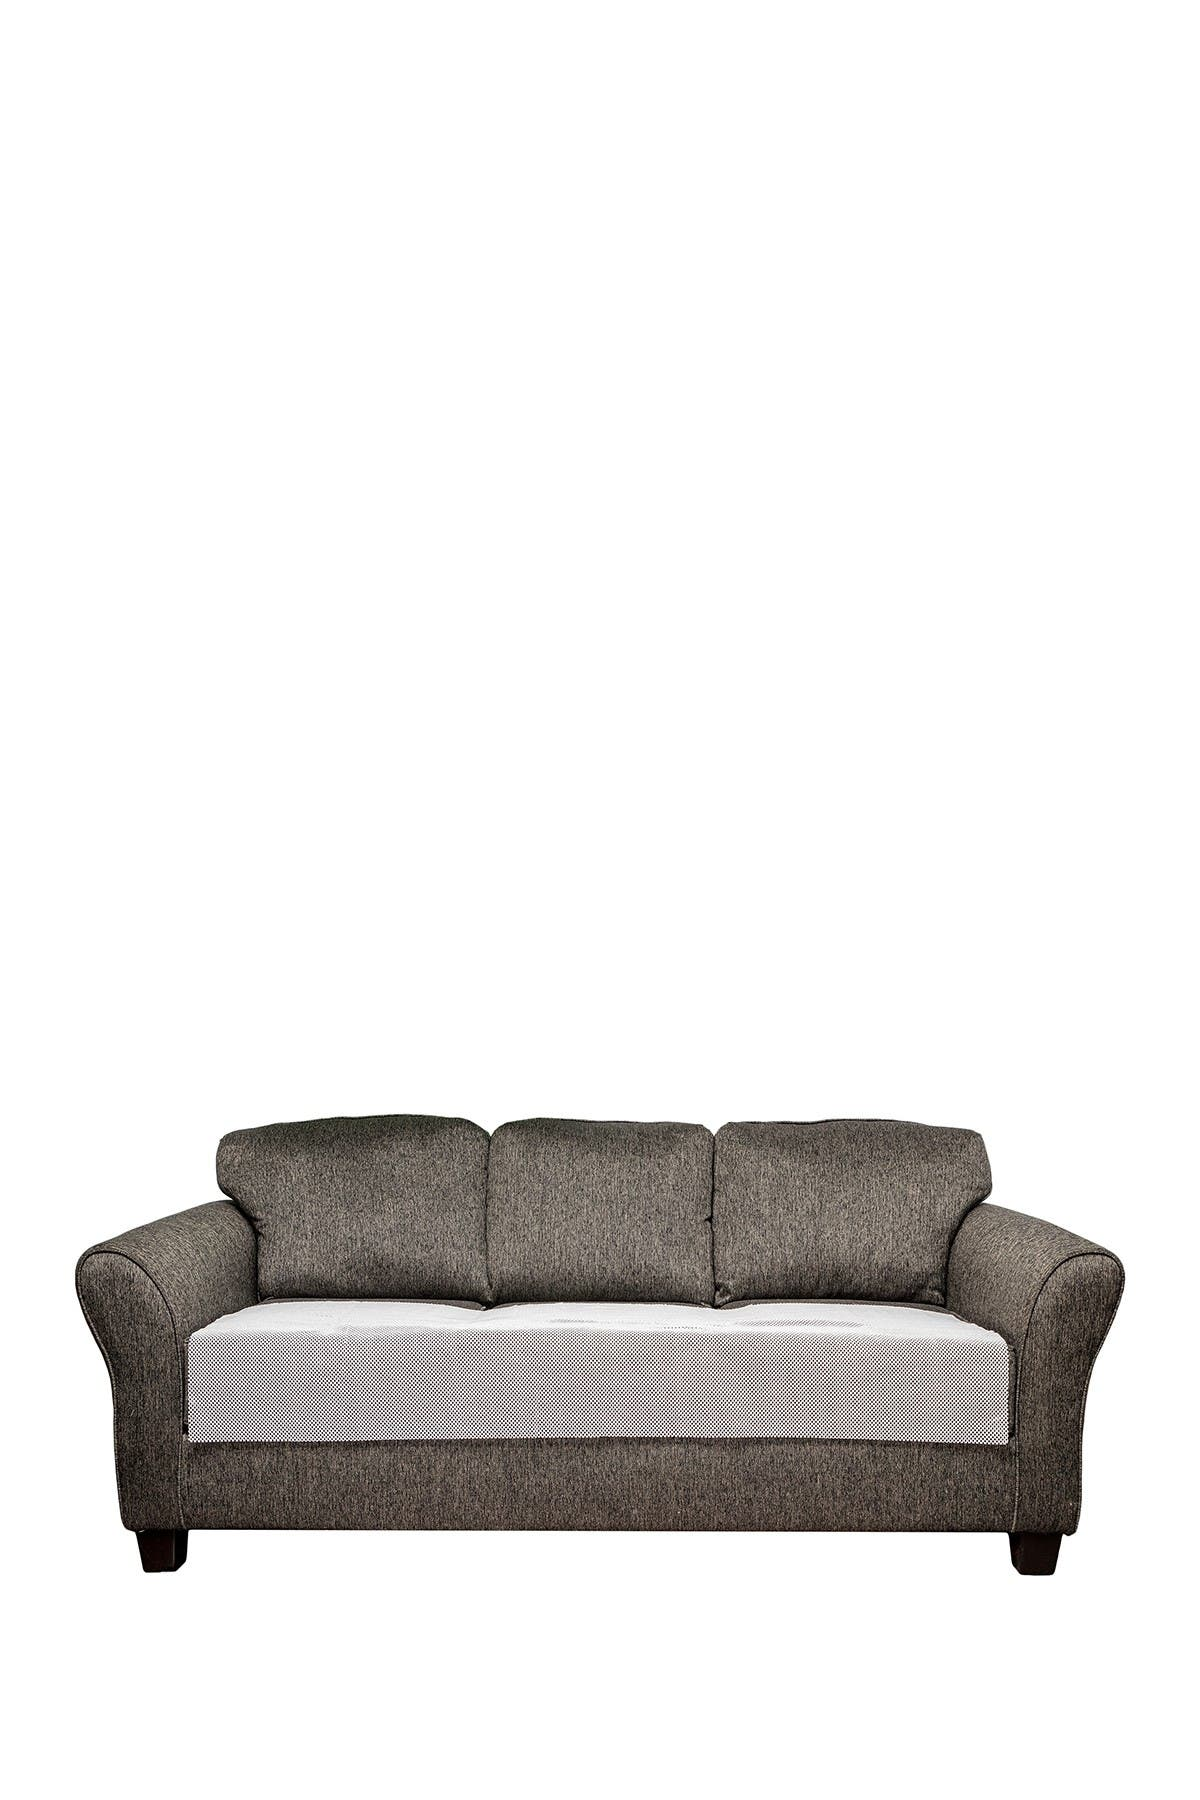 Image of Duck River Textile White Anti-Slip Sofa Cover with Pockets